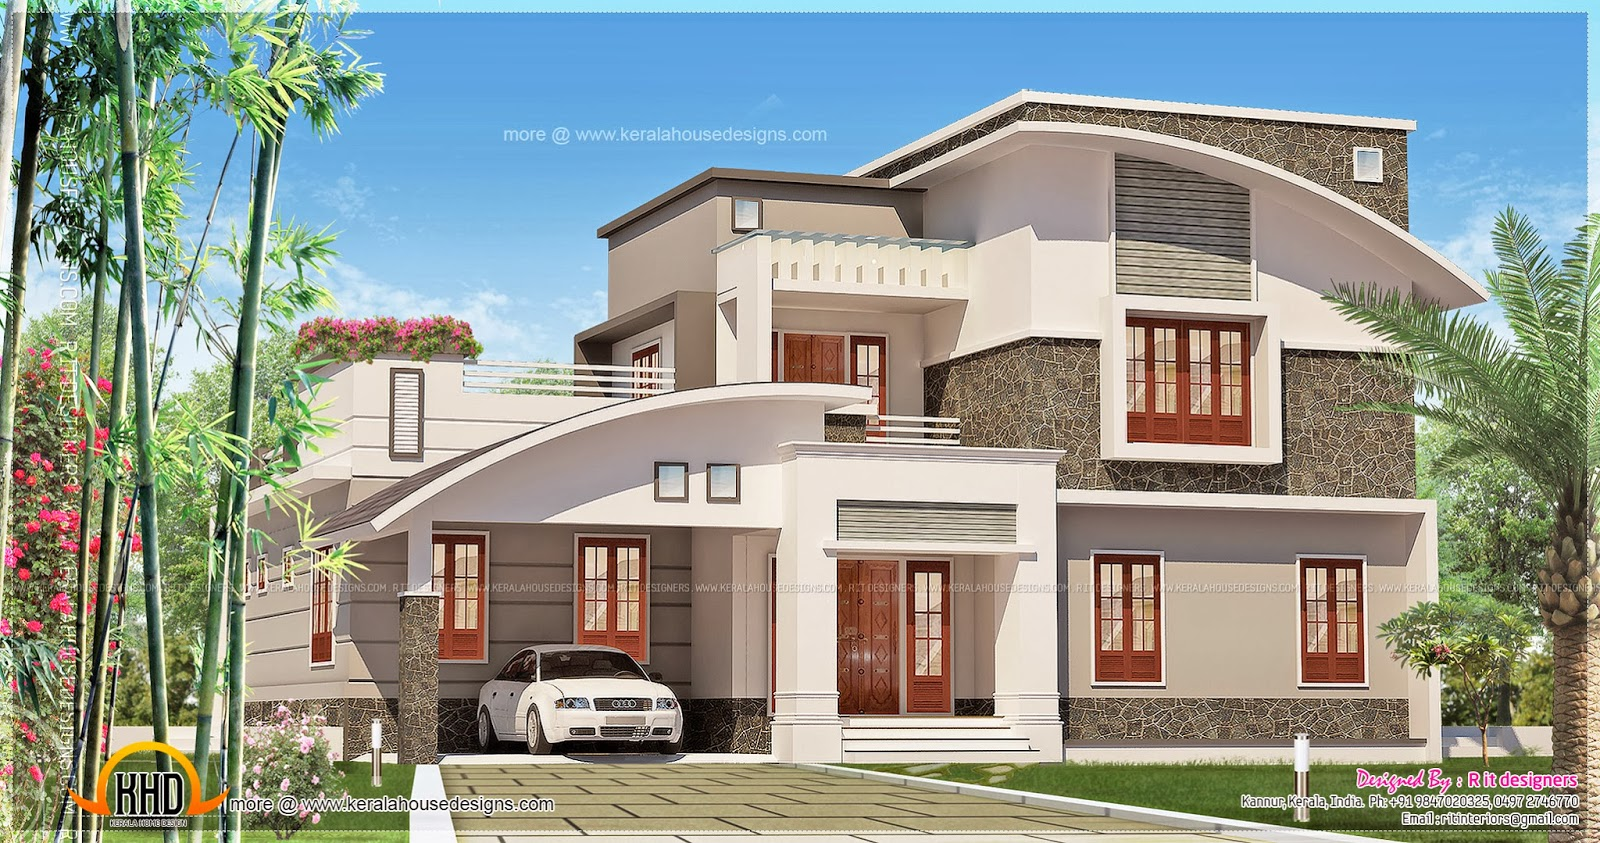 3 bedroom contemporary mix house exterior kerala home Best home designs of 2014